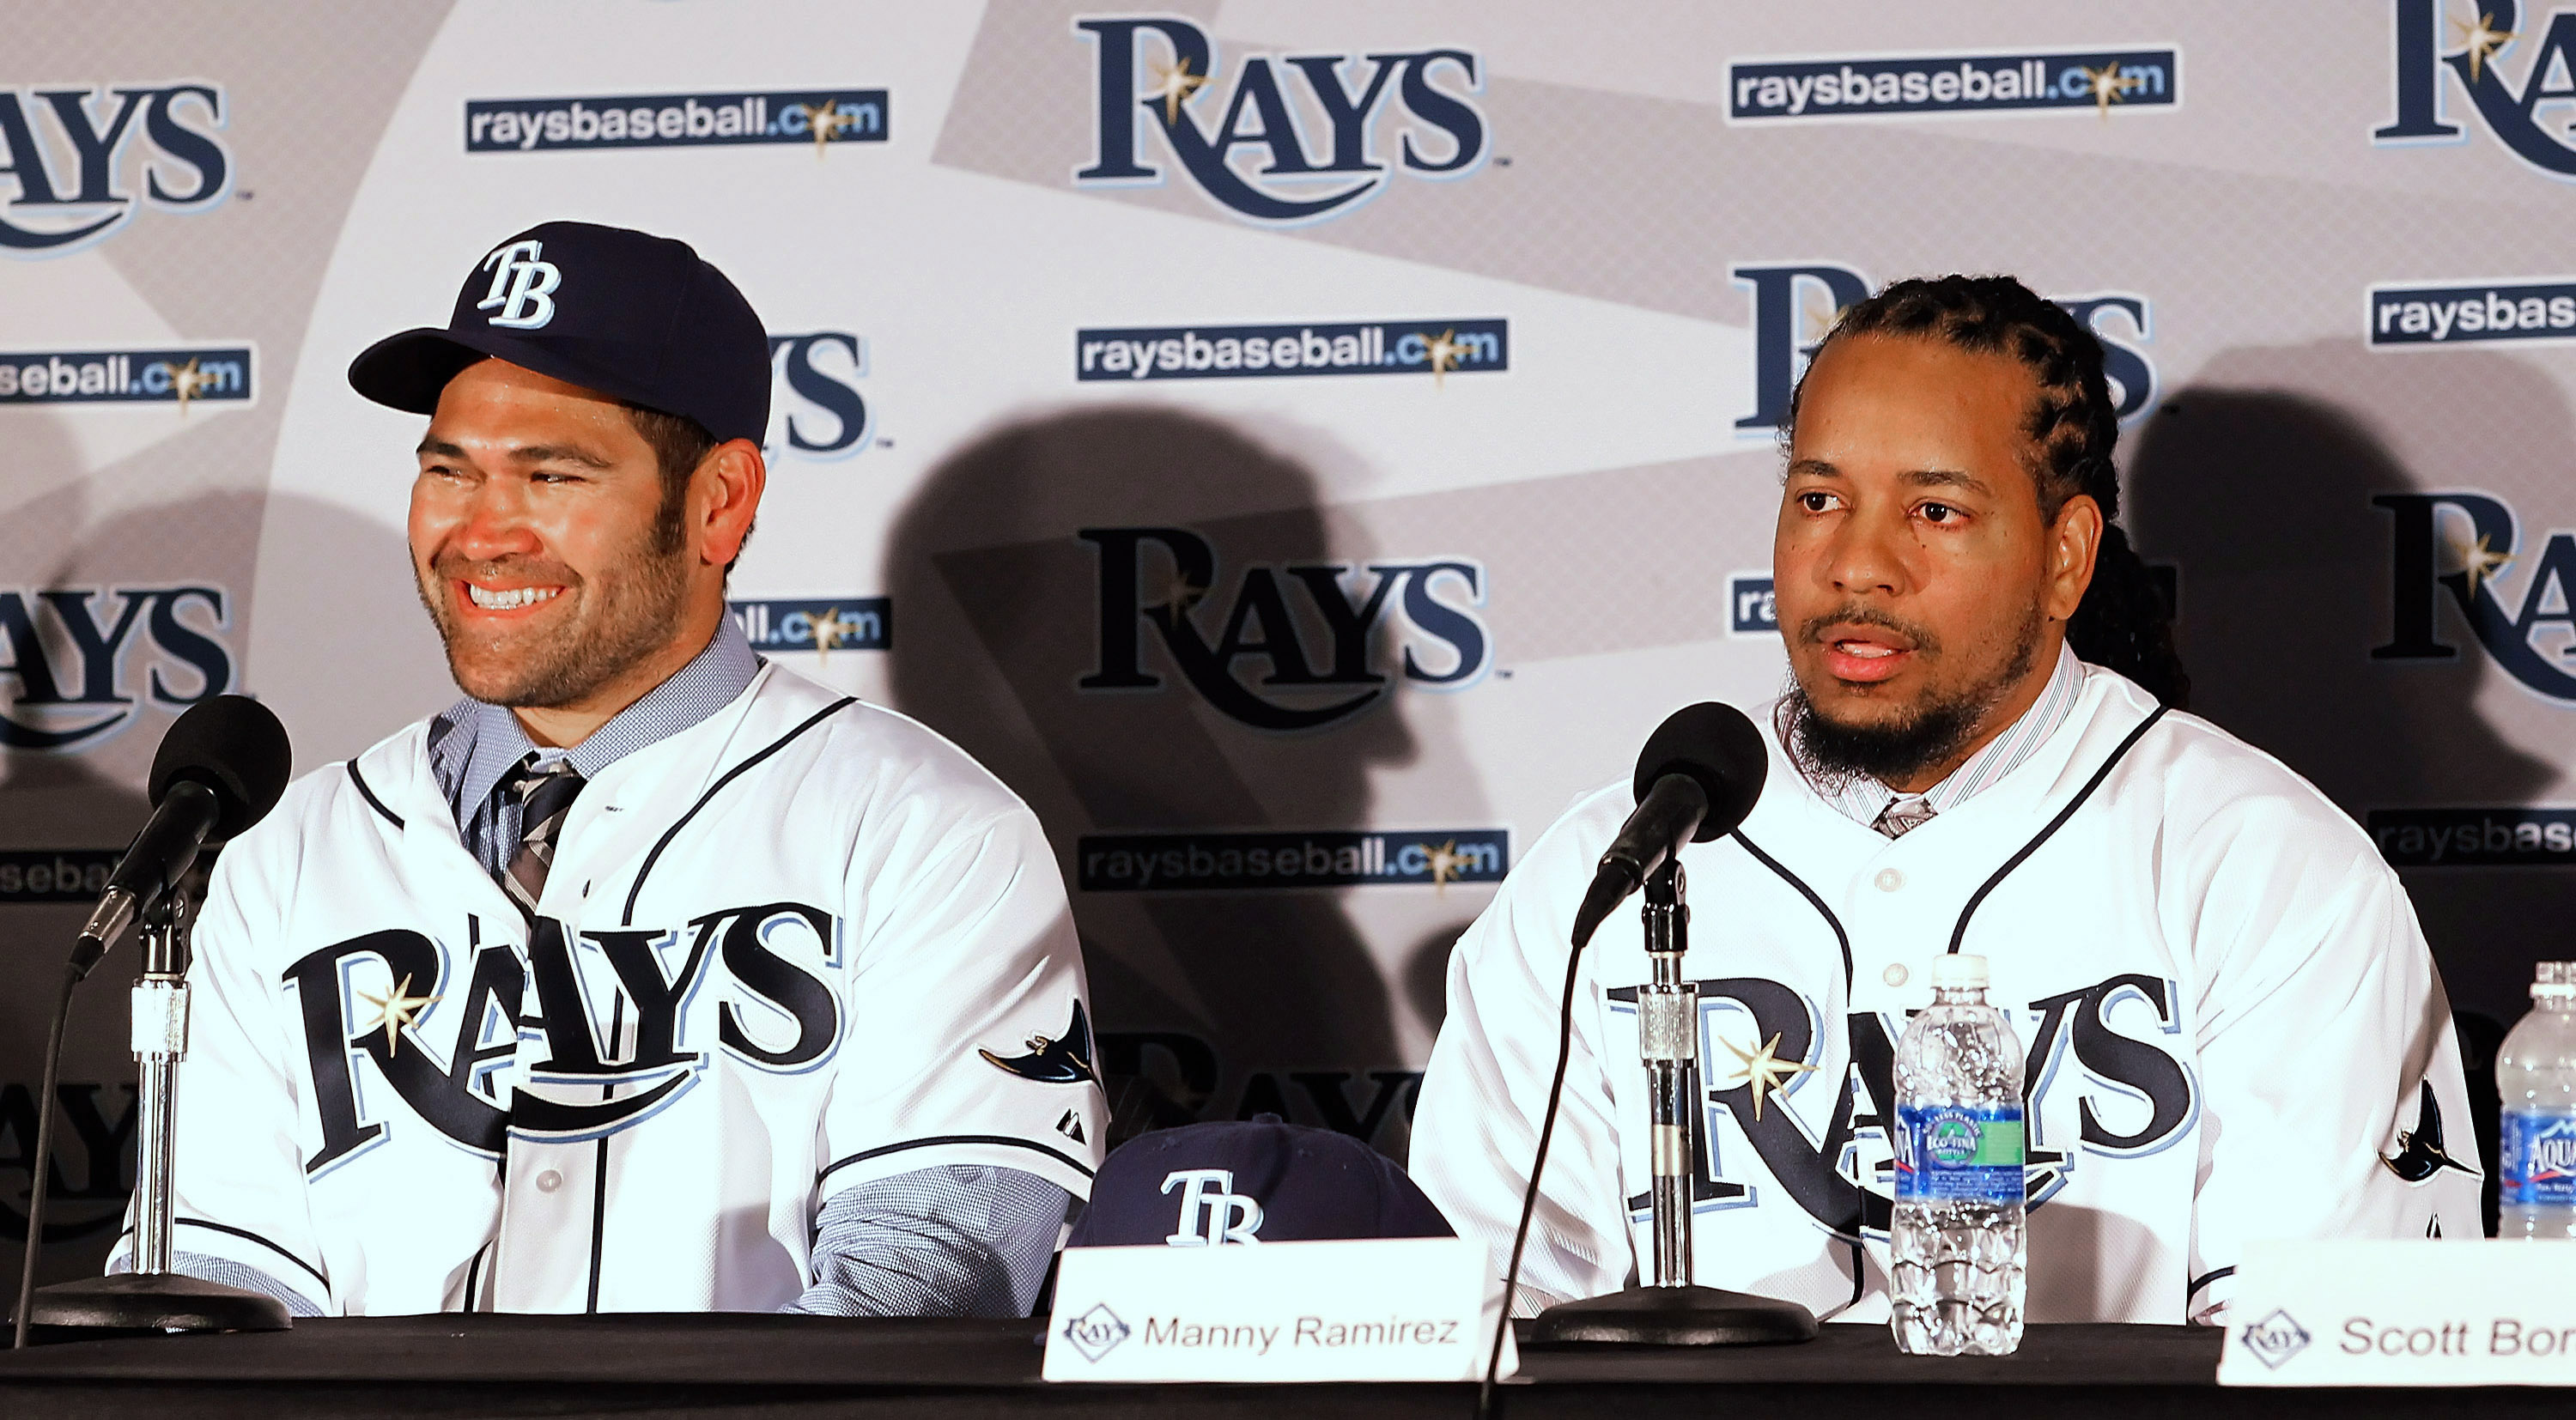 Not a good start in Tampa for Johny Damon and Manny Ramirez.